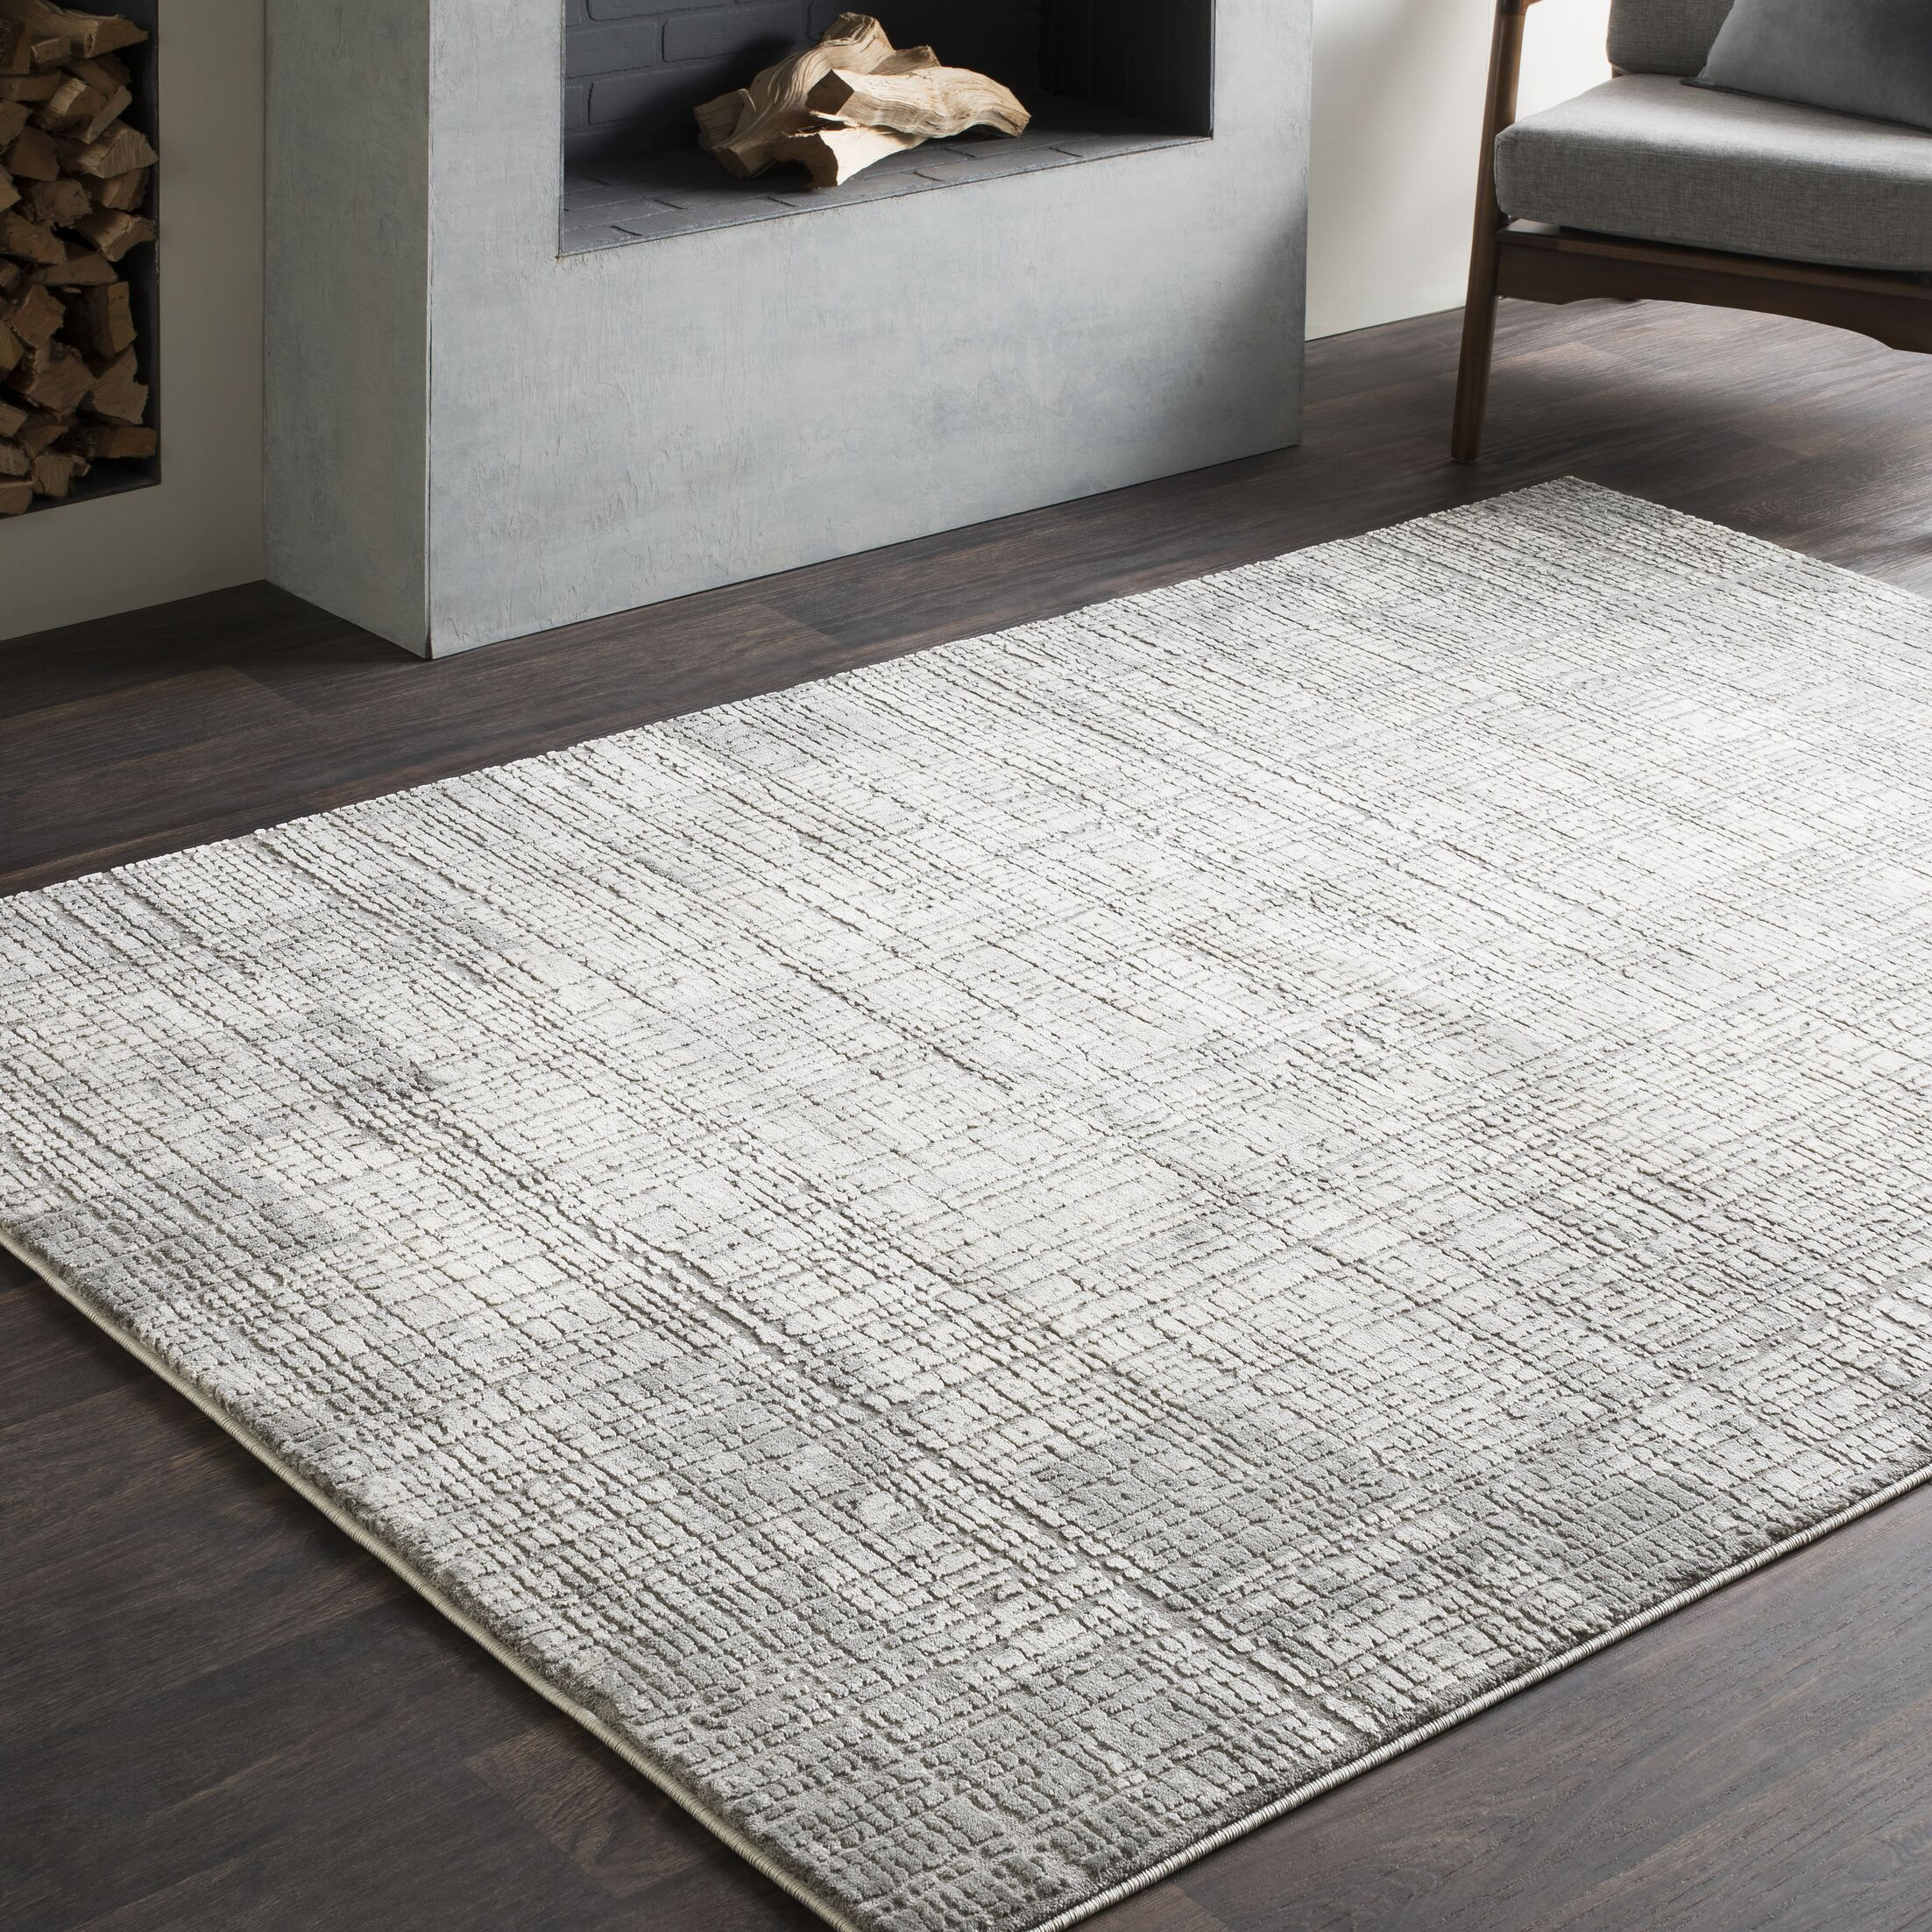 Bridgeton Distressed Modern Abstract Gray/Cream Area Rug Rug Size: Rectangle 5'3